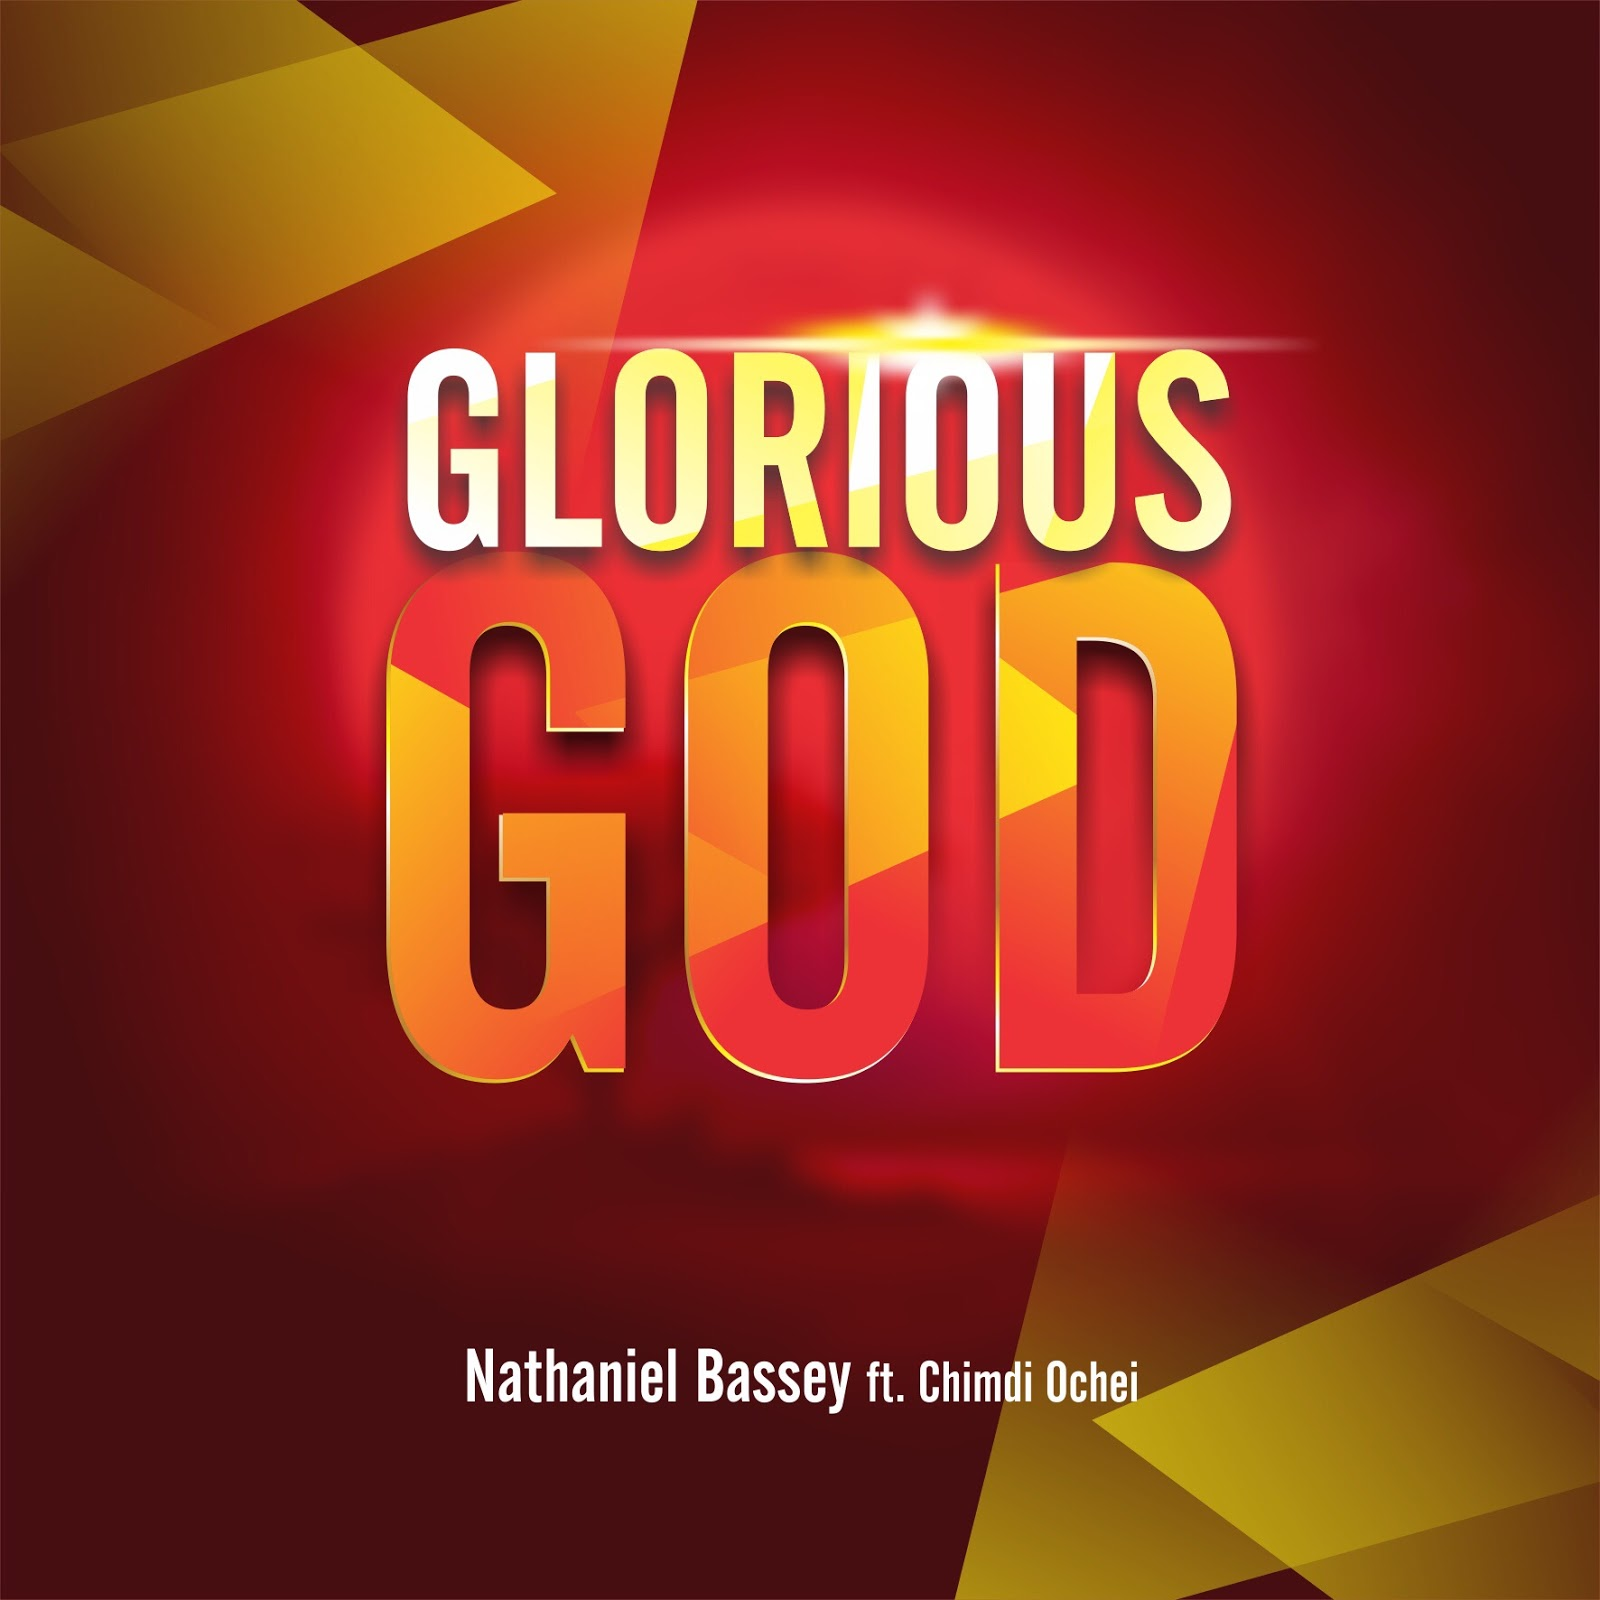 Glorious God lyrics by Nathaniel Bassey